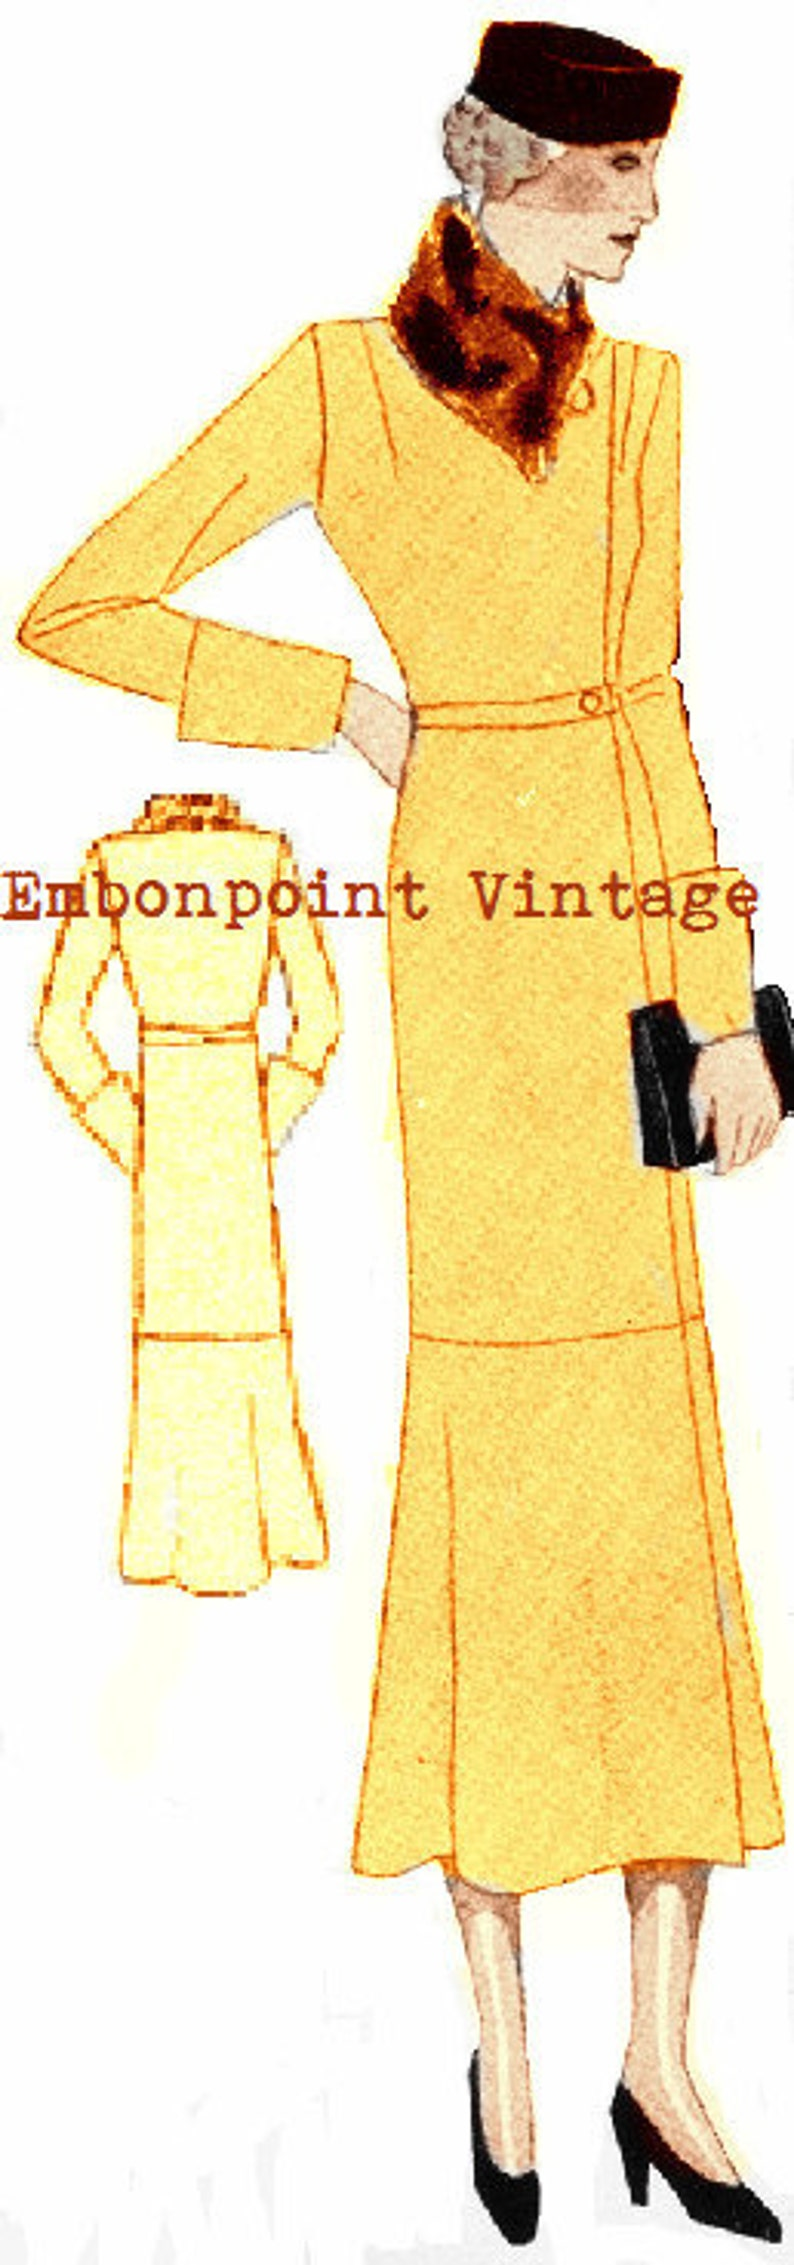 1930s Sewing Patterns- Dresses, Pants, Tops Plus Size (or any size) 1934 Vintage Coat Sewing Pattern - PDF - Pattern No 68 Earline 1930s 30s Instant Download $8.35 AT vintagedancer.com